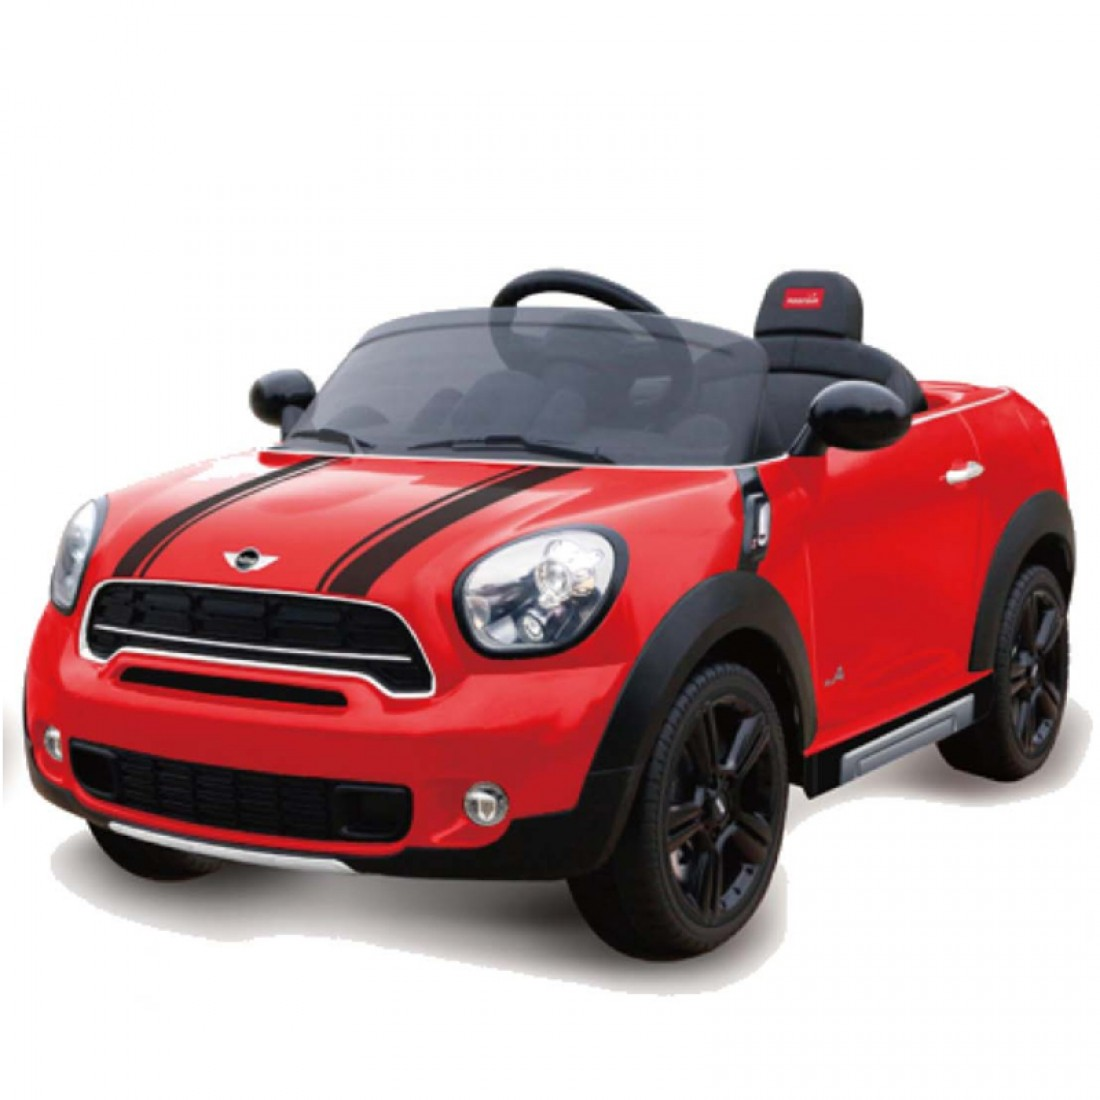 Licensed Mini Countryman 12v Rechargeable Battery Electric Ride On Car